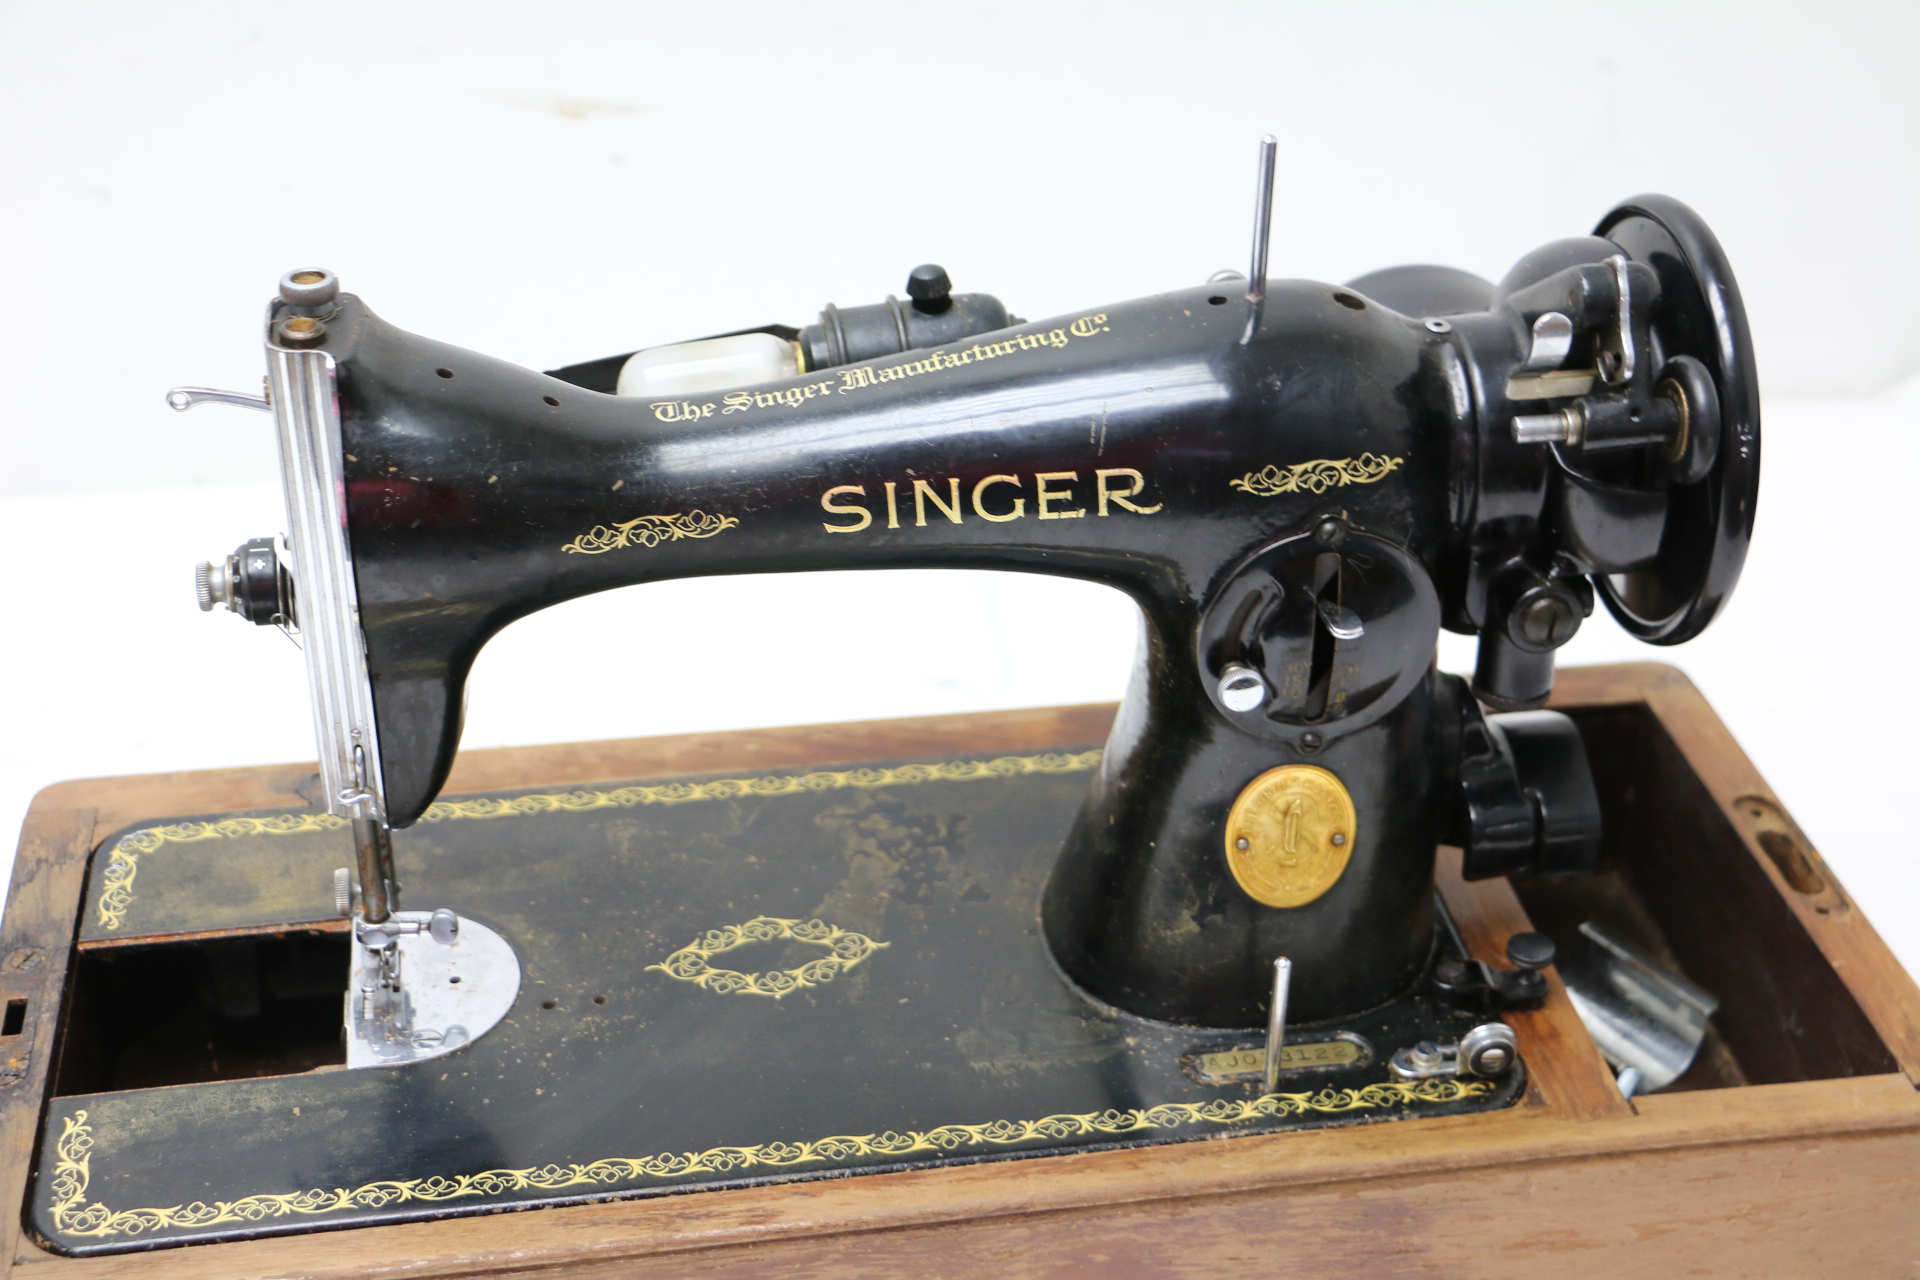 vintage singer sewing machine aj073122 w case and attachments for repair ebay. Black Bedroom Furniture Sets. Home Design Ideas